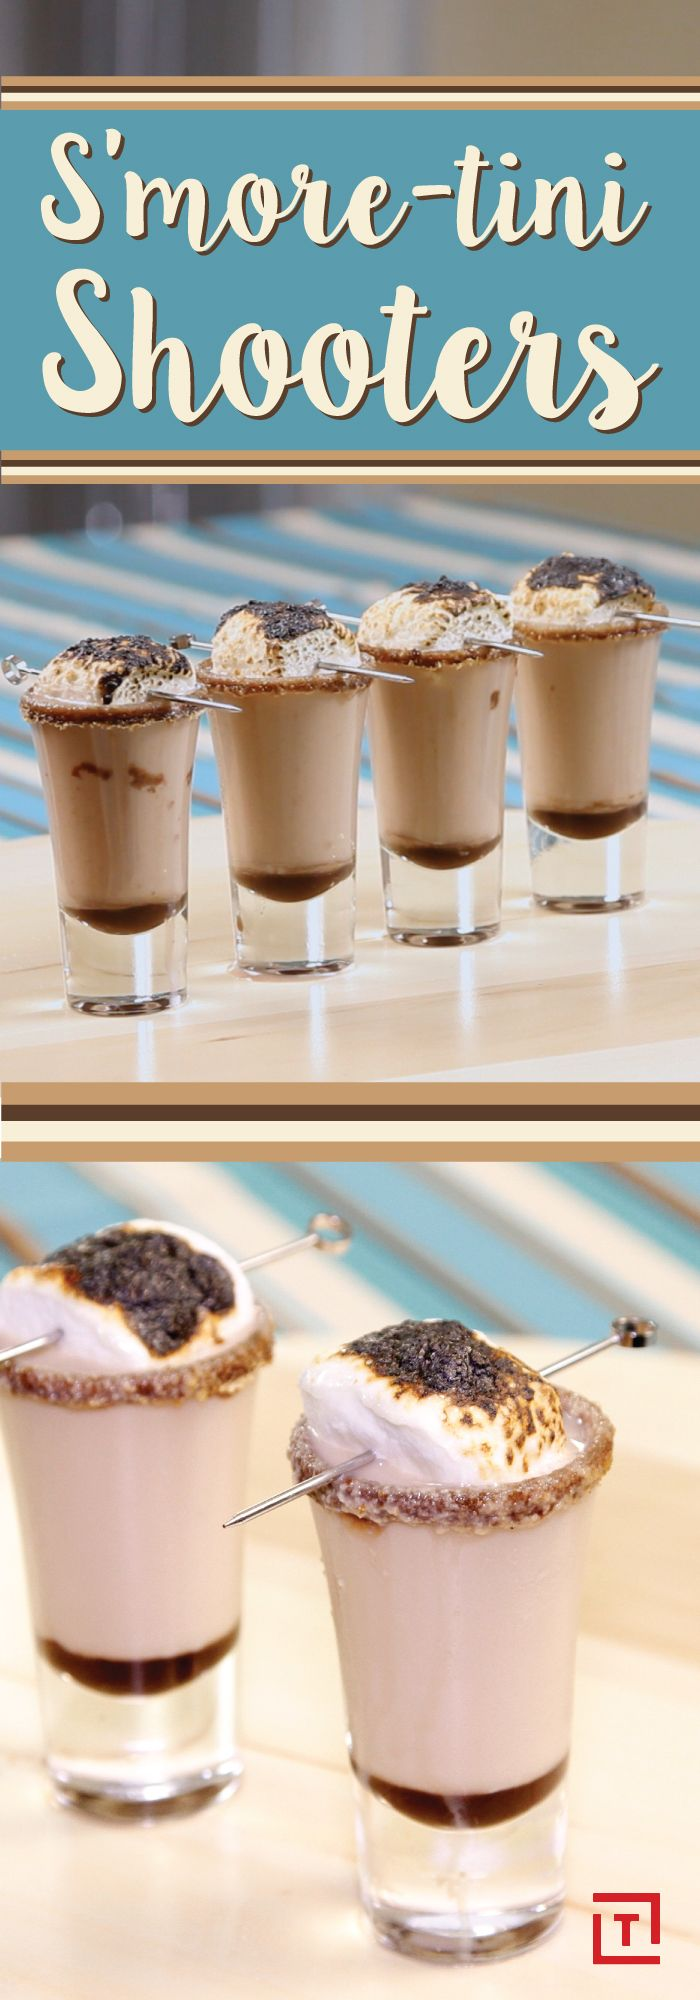 Bring out the fiery, smokey flavor of our favorite campfire treat with these chocolatey s'more-tini shooters. Chocolate liqueur and vodka are combined in a shot glass that's rimmed with chocolate syrup and dipped in crushed graham cracker, then topped off with a roasted marshmallow for a shot you actually want to take.